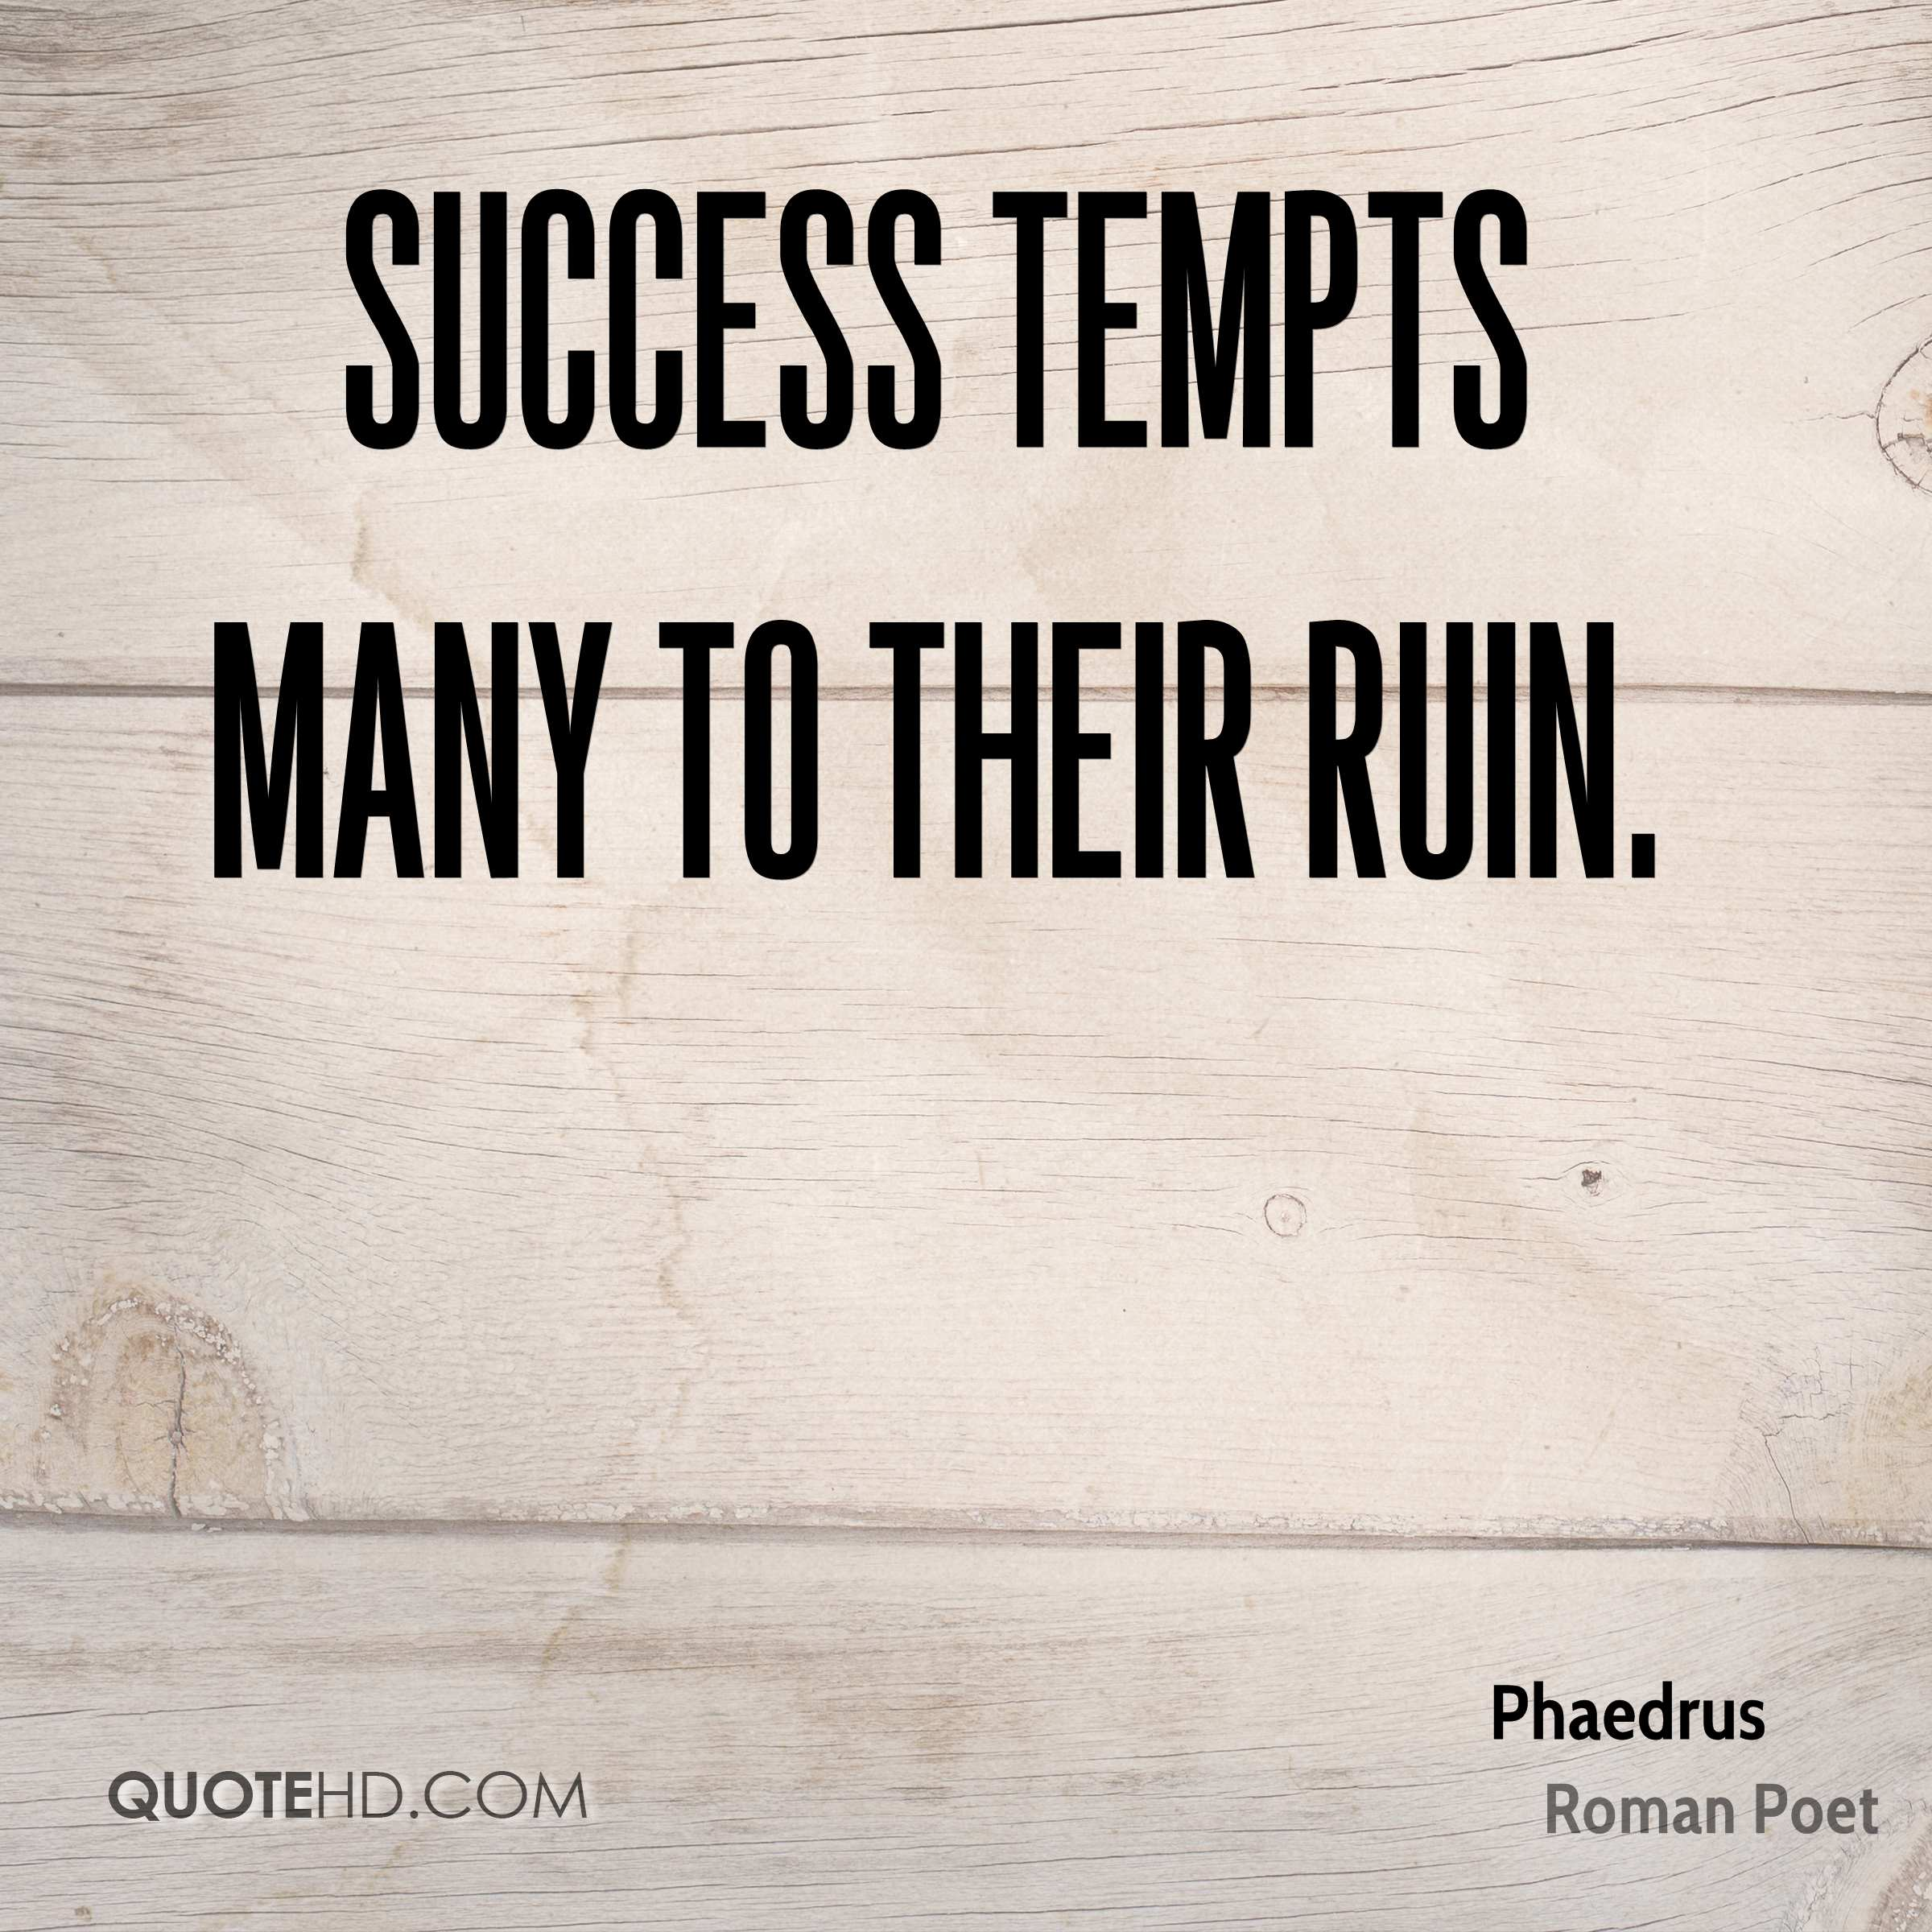 Success tempts many to their ruin.